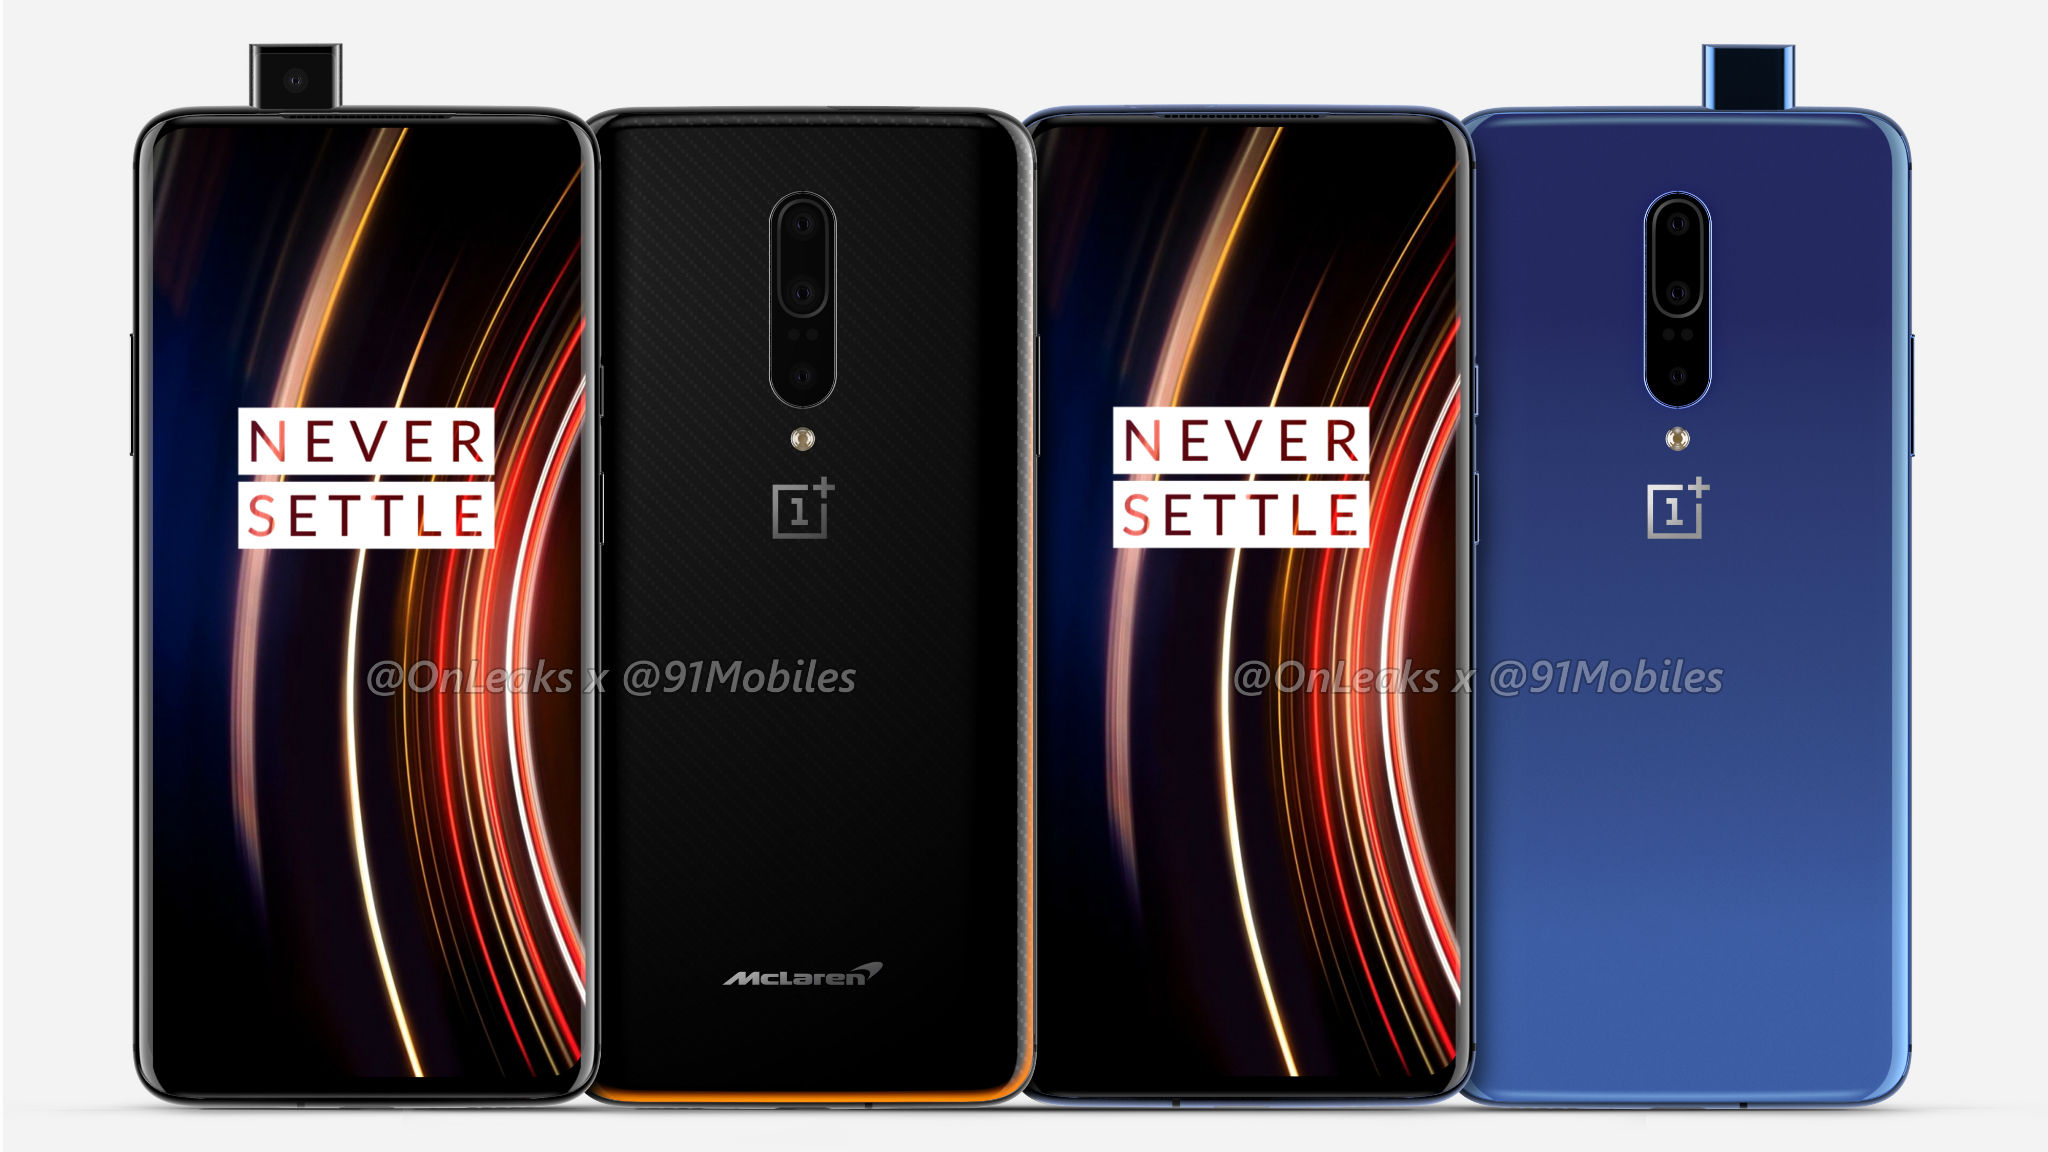 Exclusive] OnePlus 7T Pro and OnePlus 7T Pro McLaren Edition